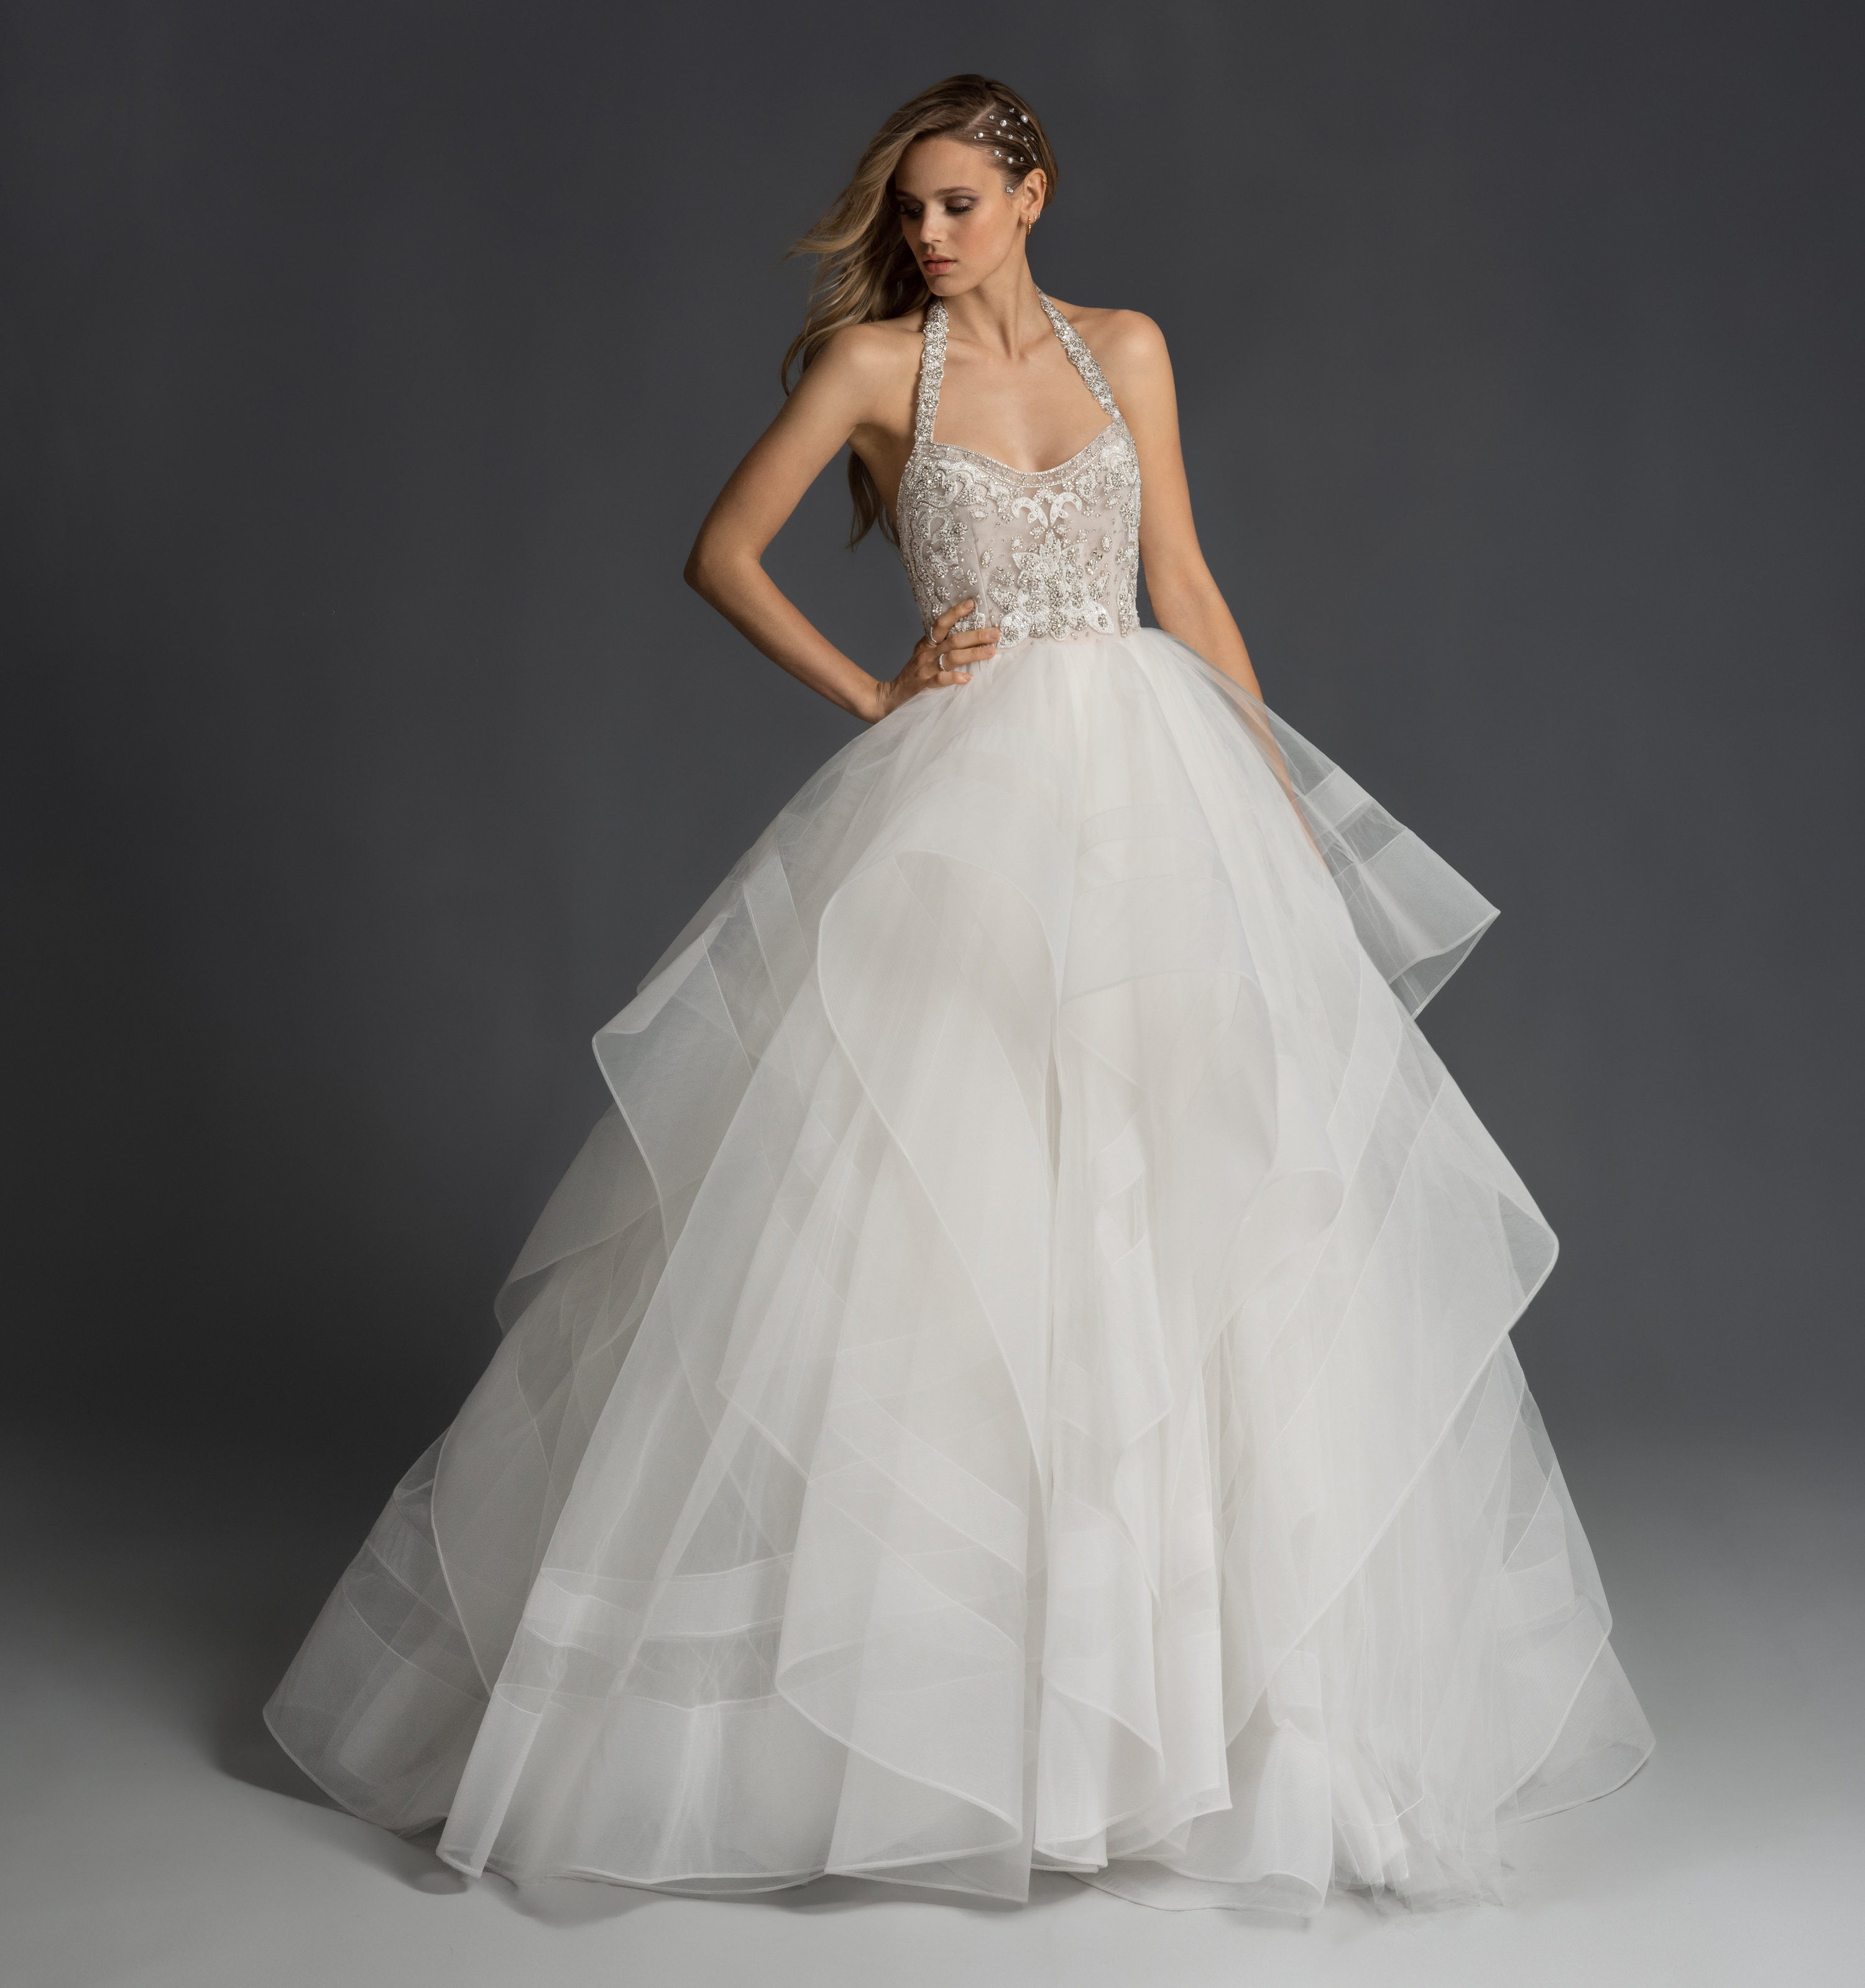 Hairstyle For Halter Neck Wedding Dress: Bridal Gowns And Wedding Dresses By JLM Couture